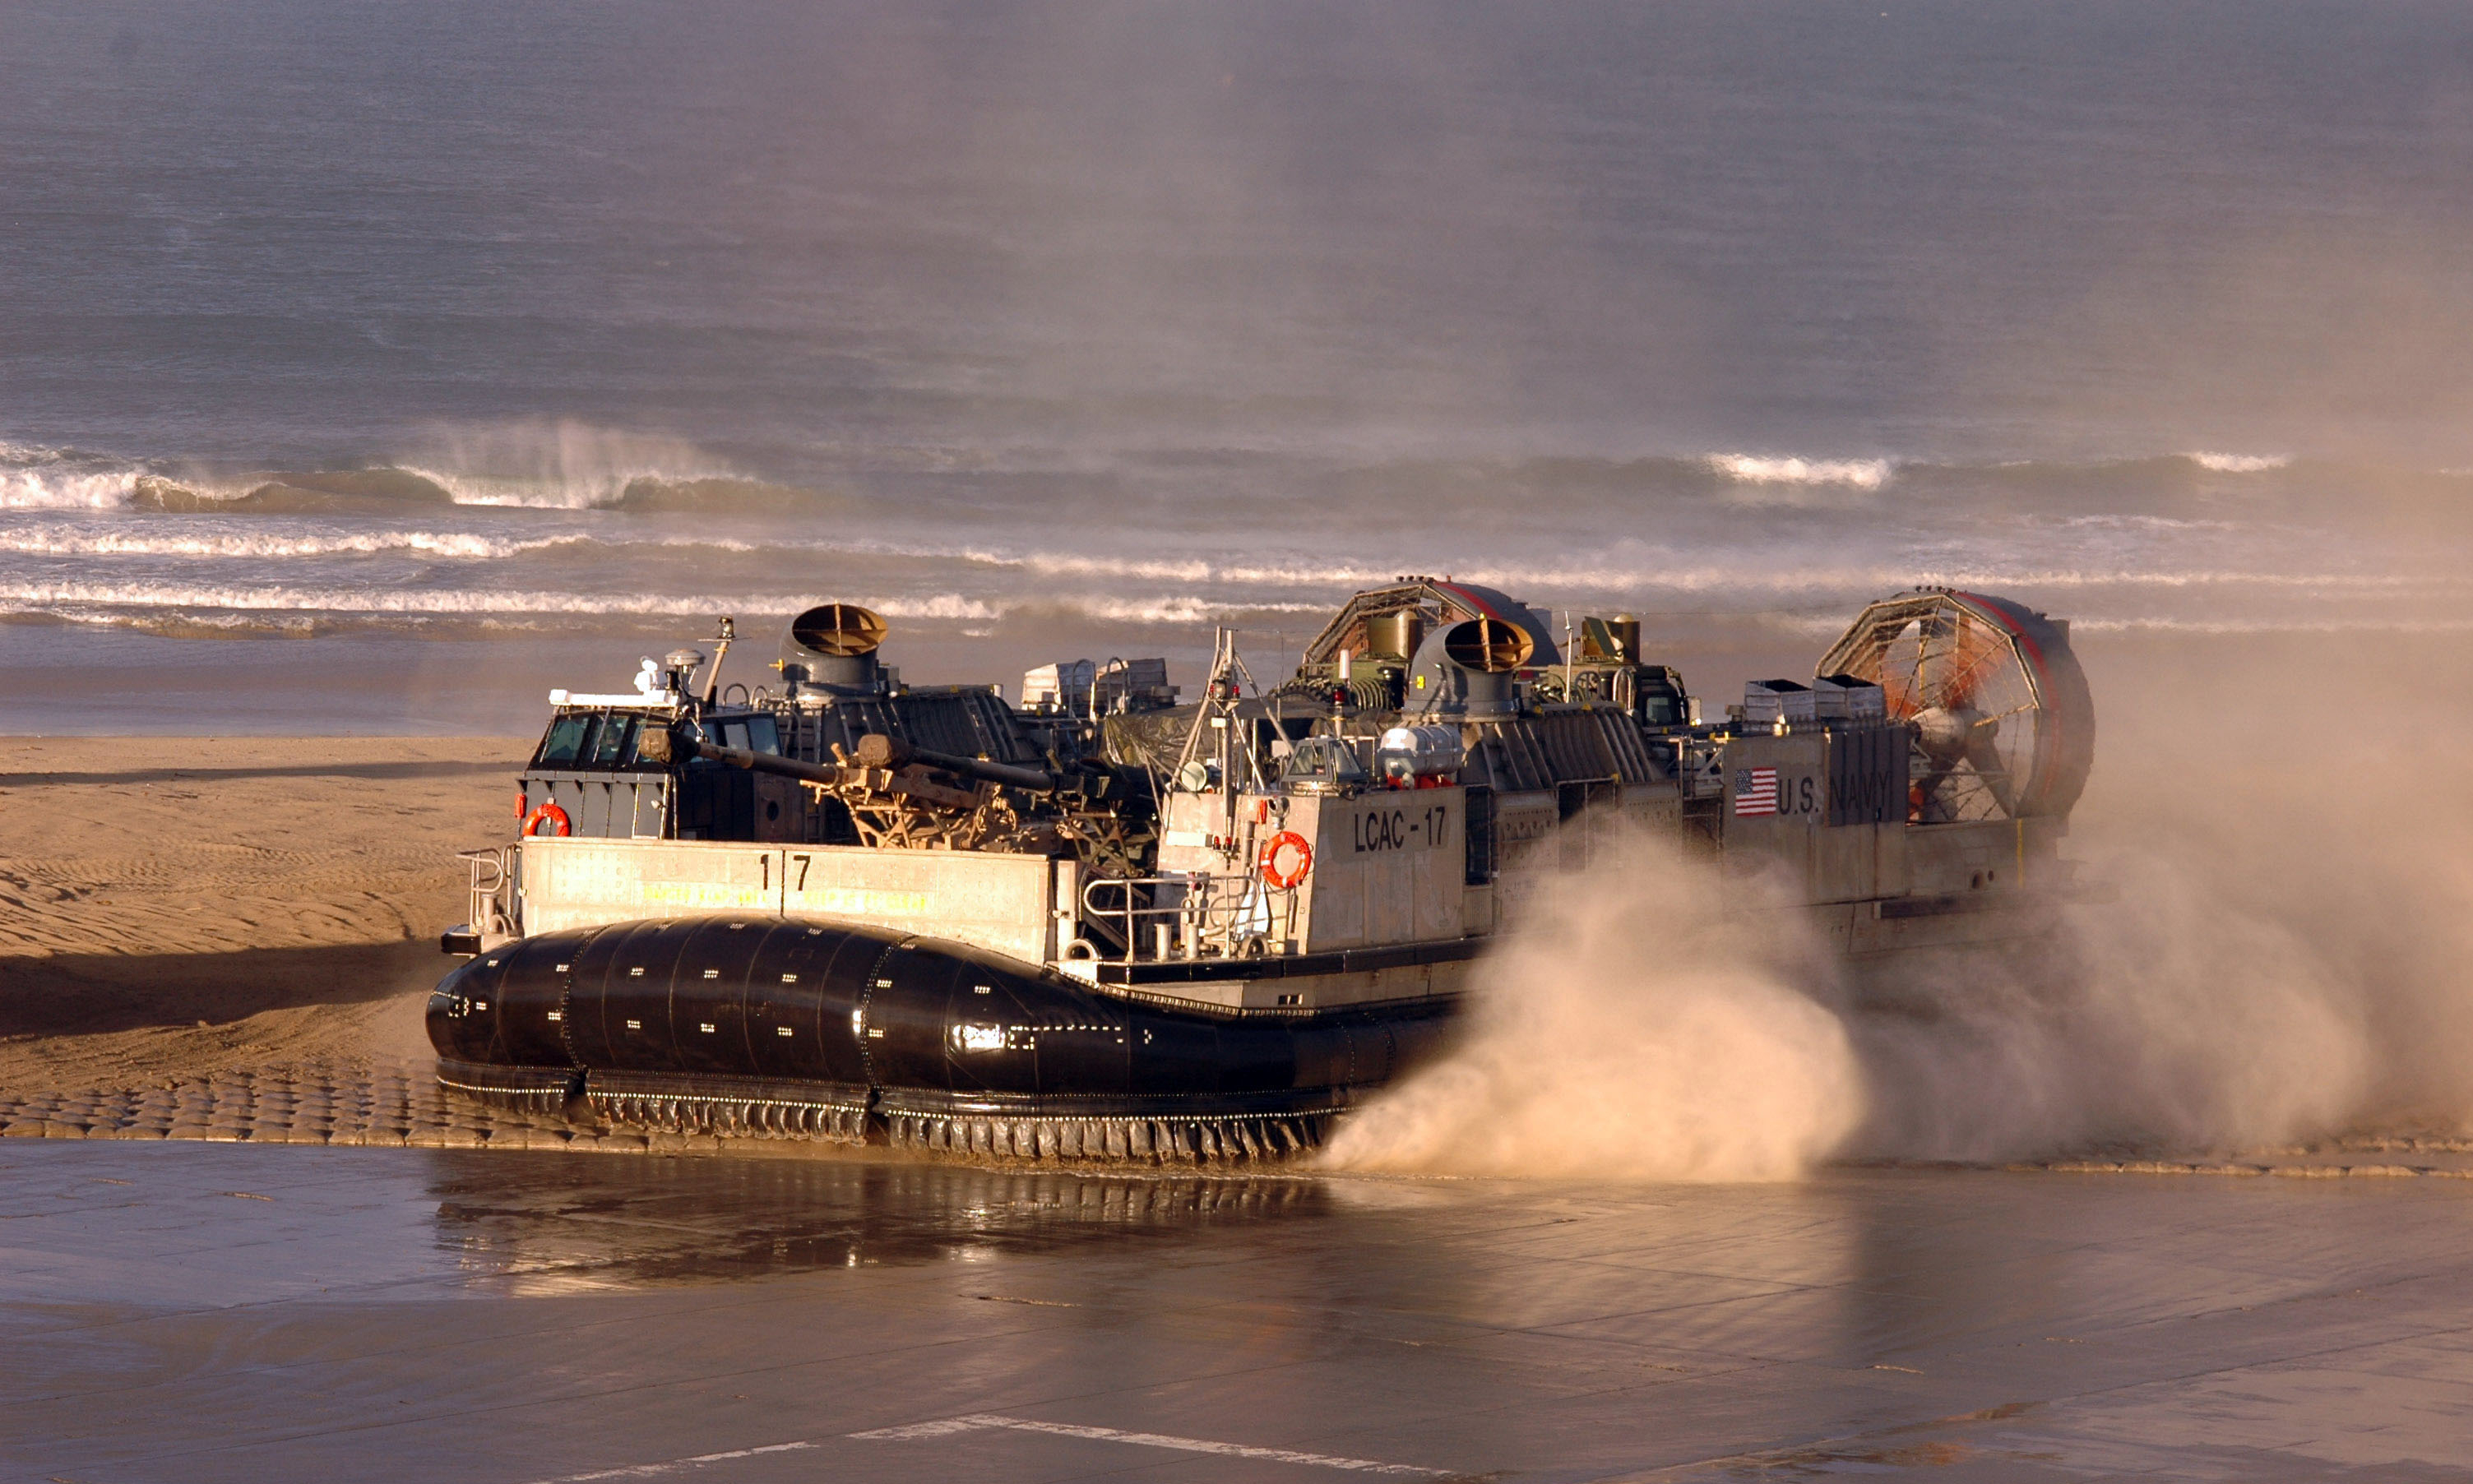 File:LCAC of ACU-5 at Camp Pendleton.jpg - Wikimedia Commons